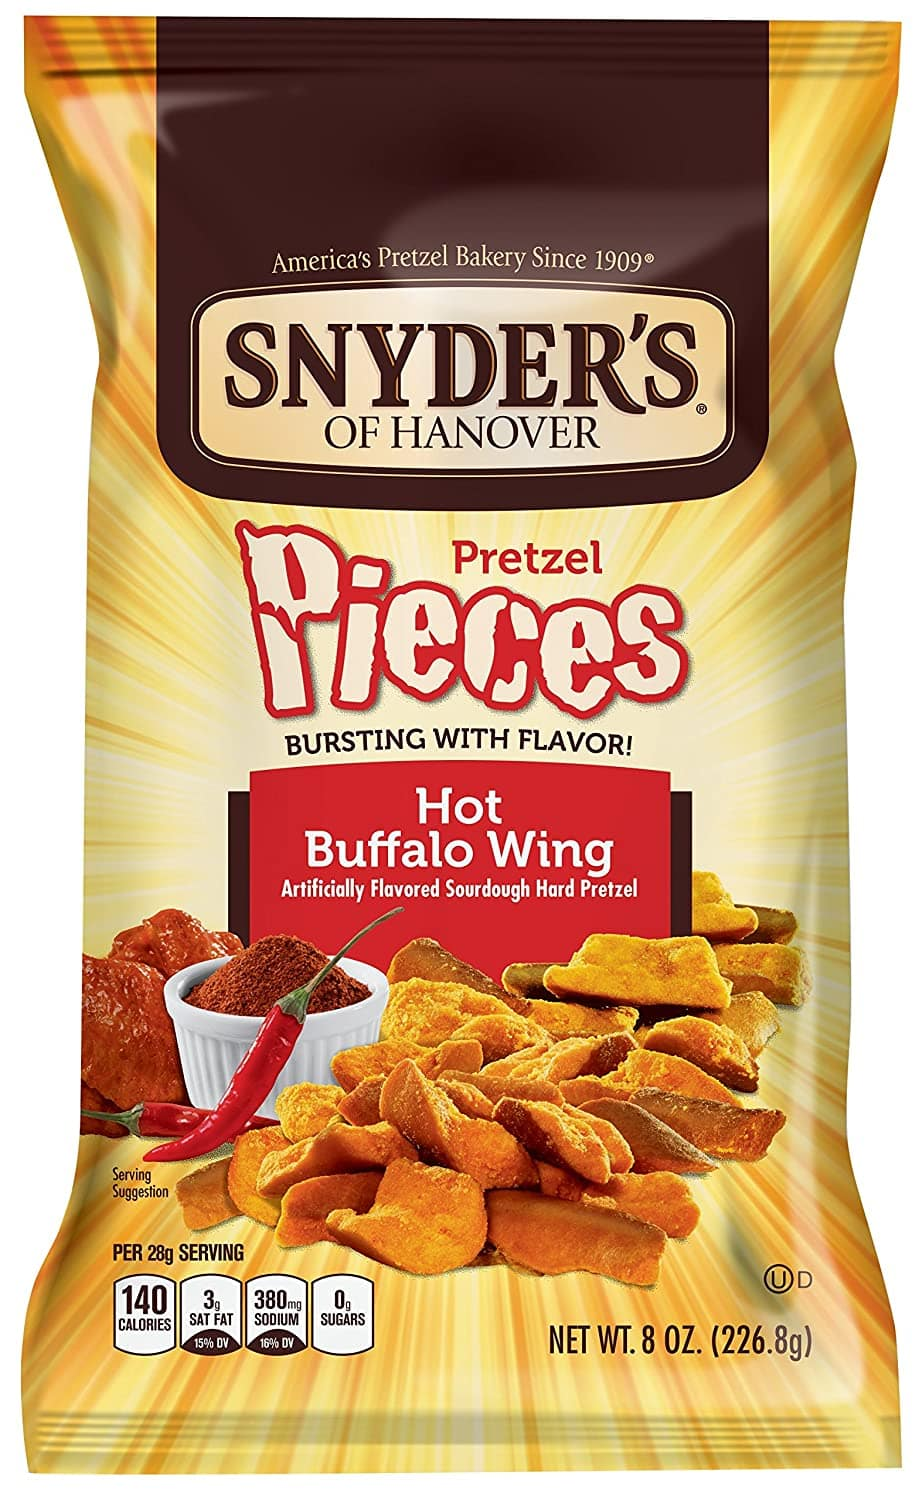 6-Pack 8-oz Snyder's Hanover Pretzel Pieces (Hot Buffalo Wing) $9 ($1.50 each)  w/ S&S + Free Shipping w/ Prime or on orders over $25